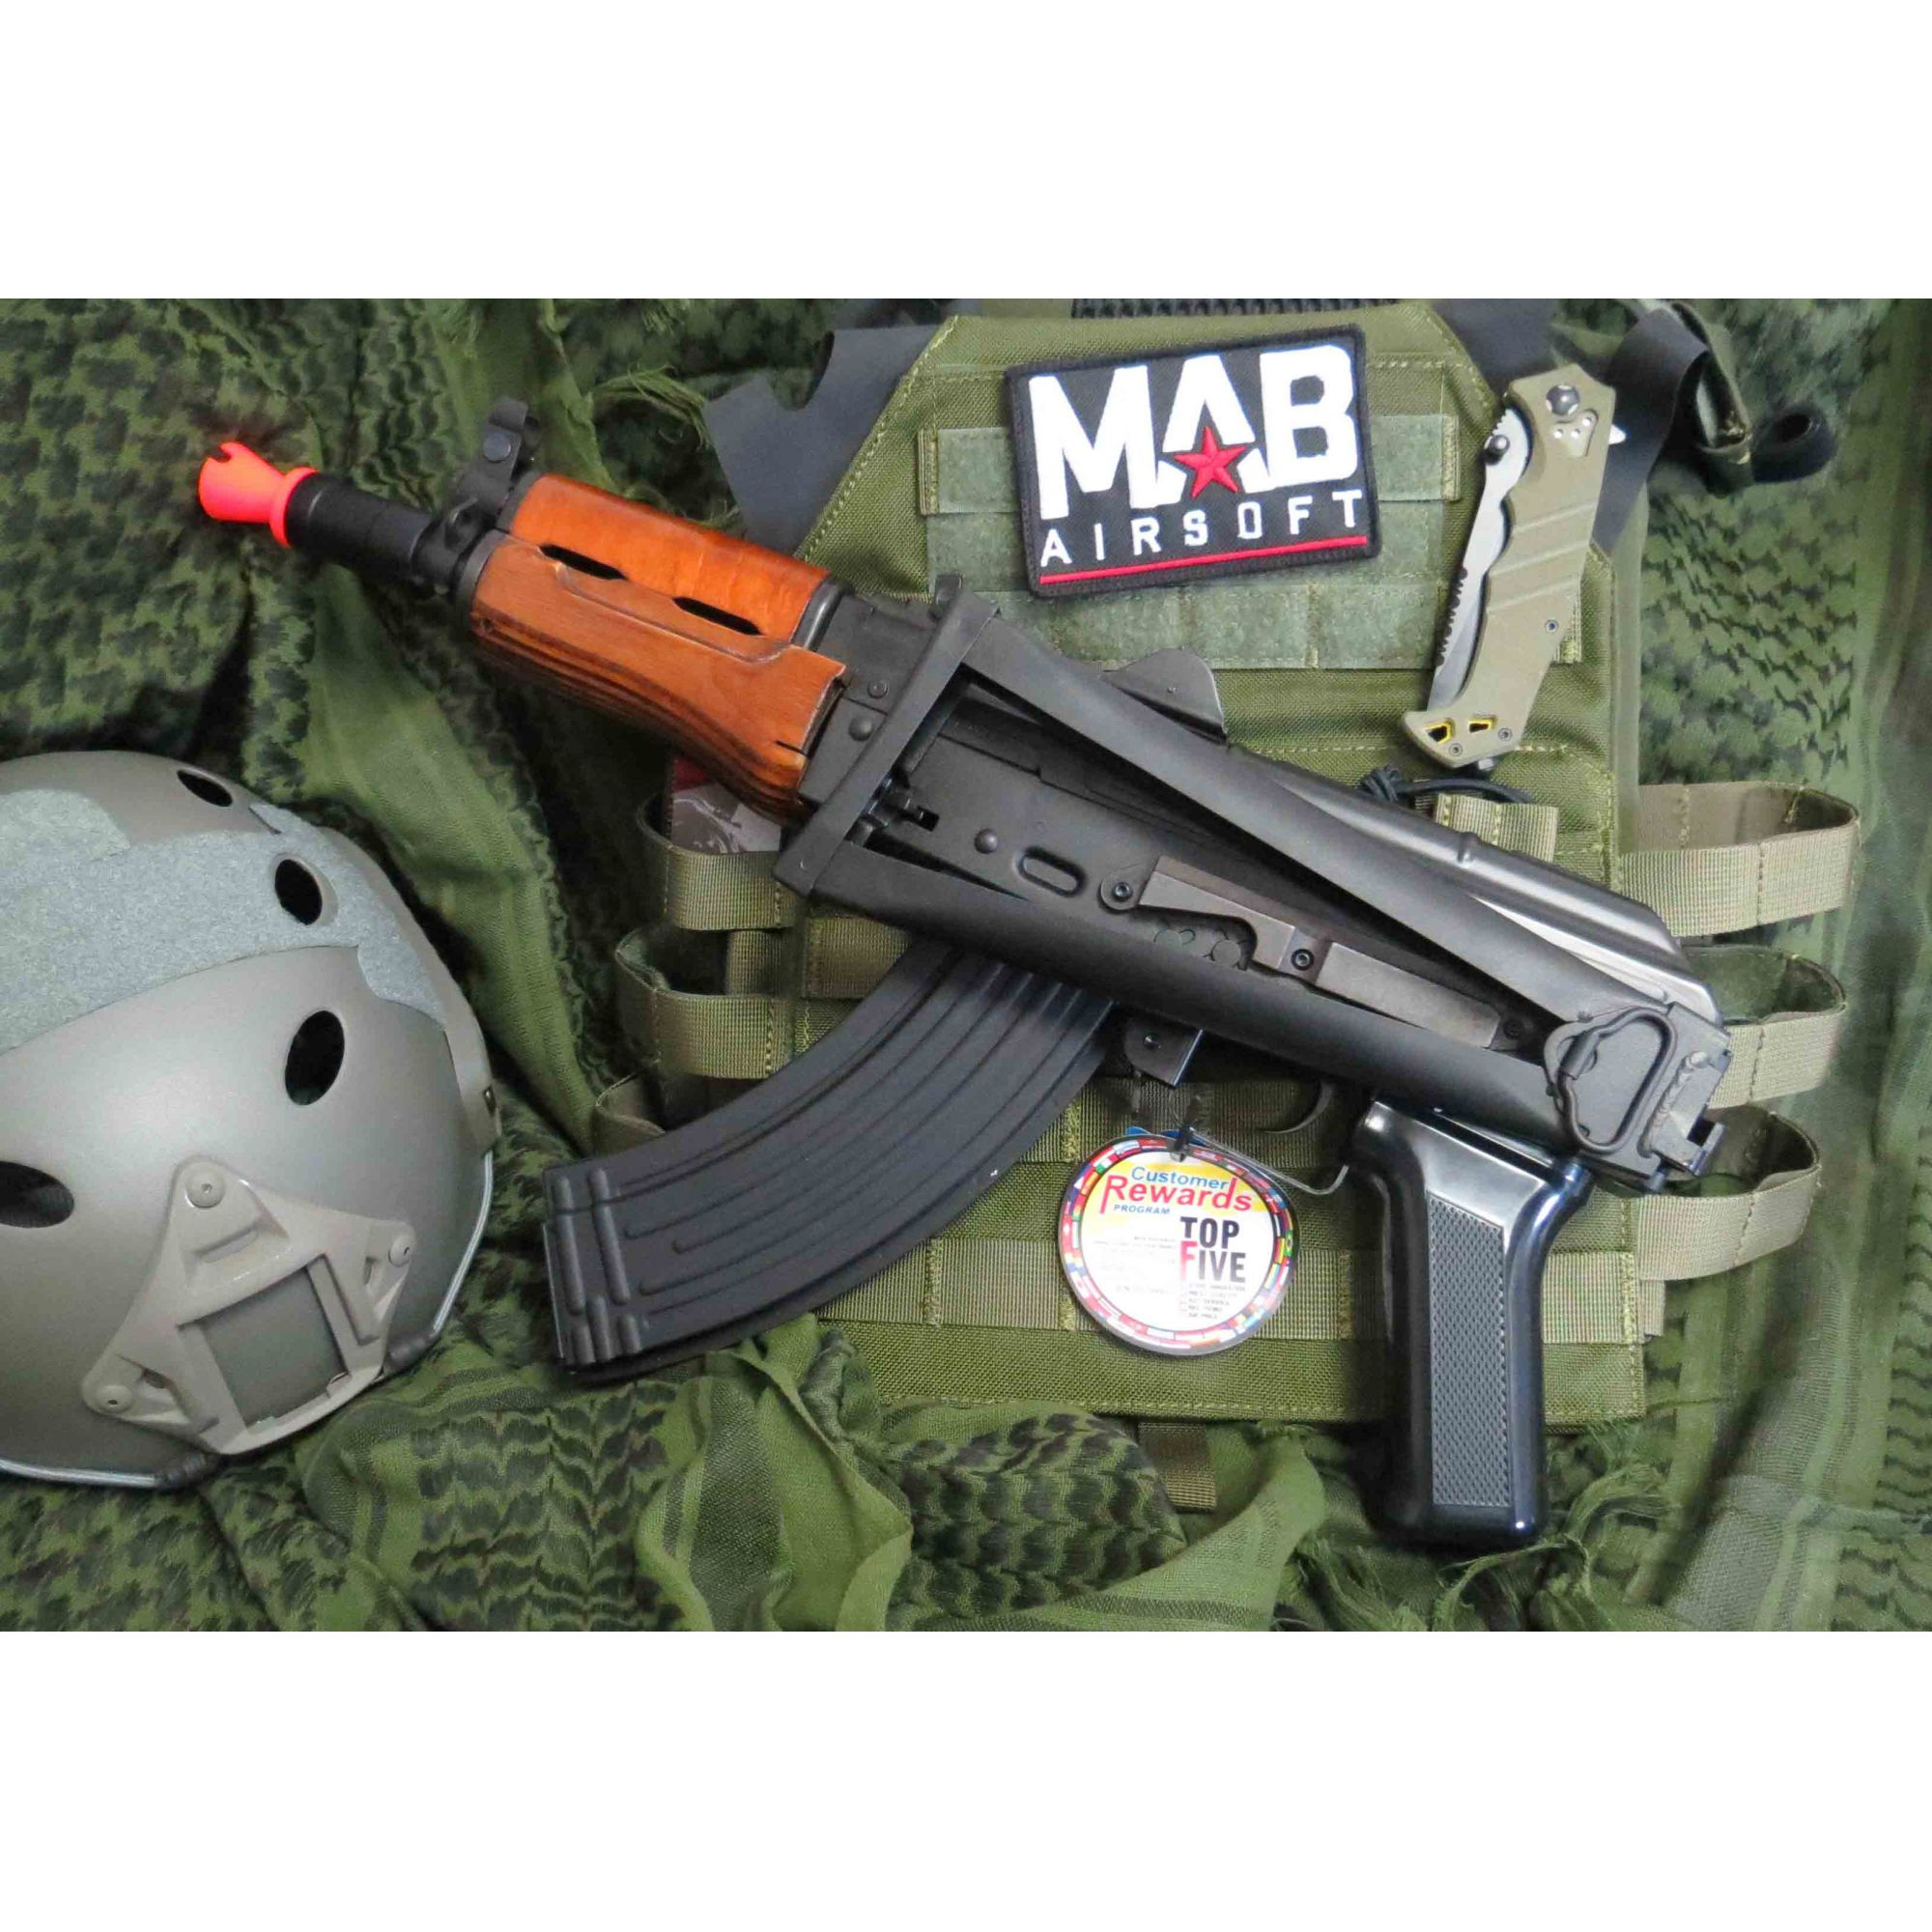 Rifle Airsoft AEG G&G AK GKS74U Full Metal e Madeira Real - MAB AIRSOFT